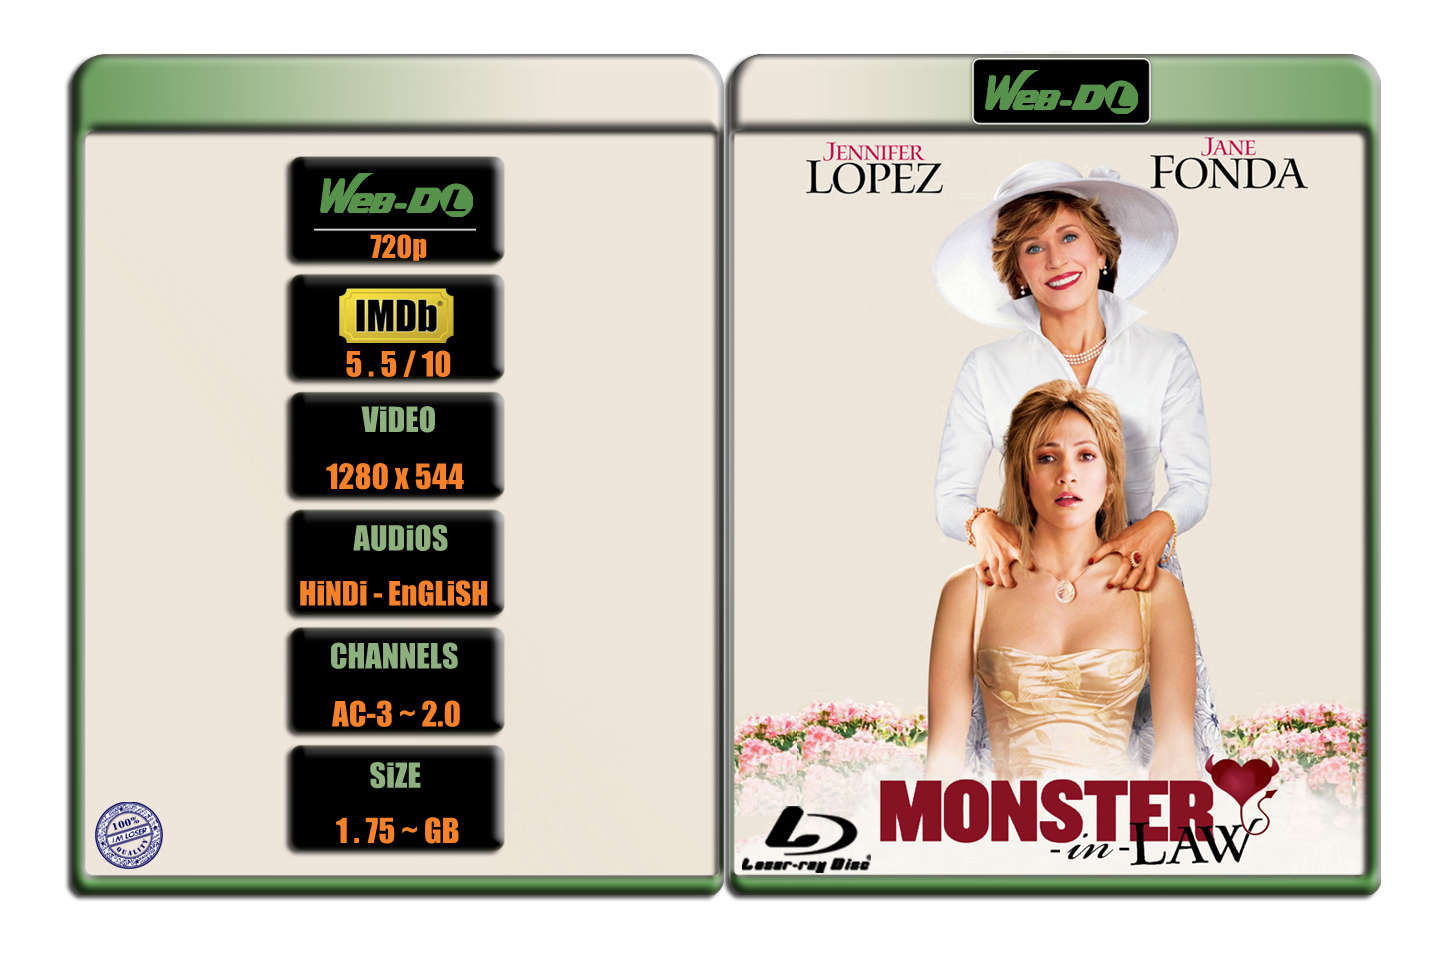 Monster In Law [2005] 720p WEB-DL x264 [AC-3 ~ 2.0] [HINDI – ENG] ® Im Loser ® 1.75 GB